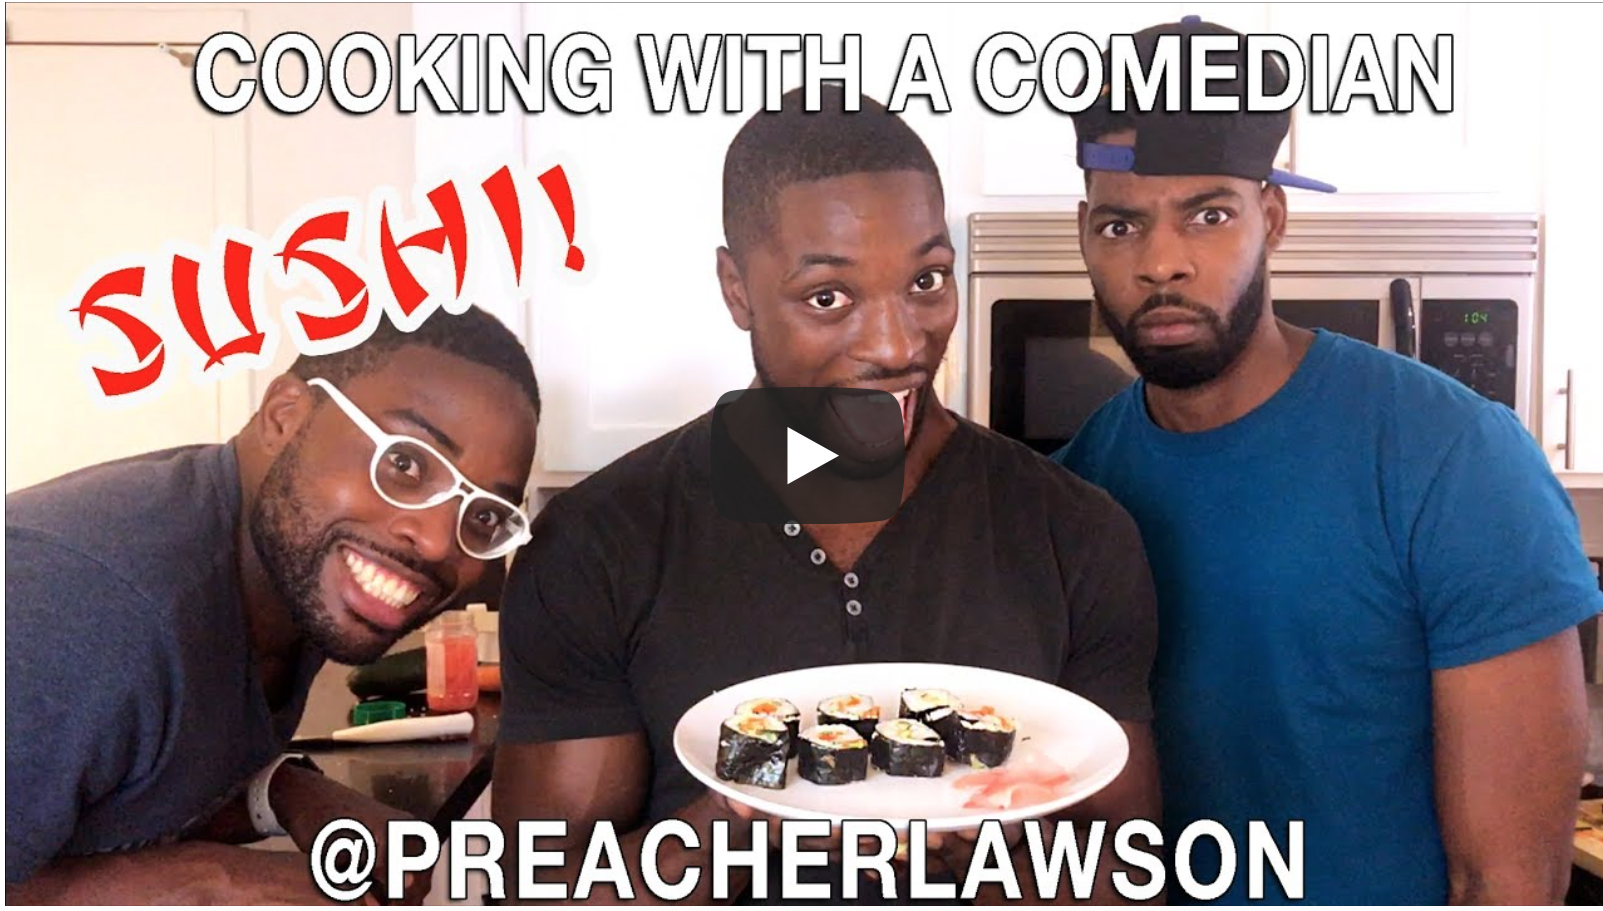 How To Make Sushi - Cooking With A Comedian | VeganFlix